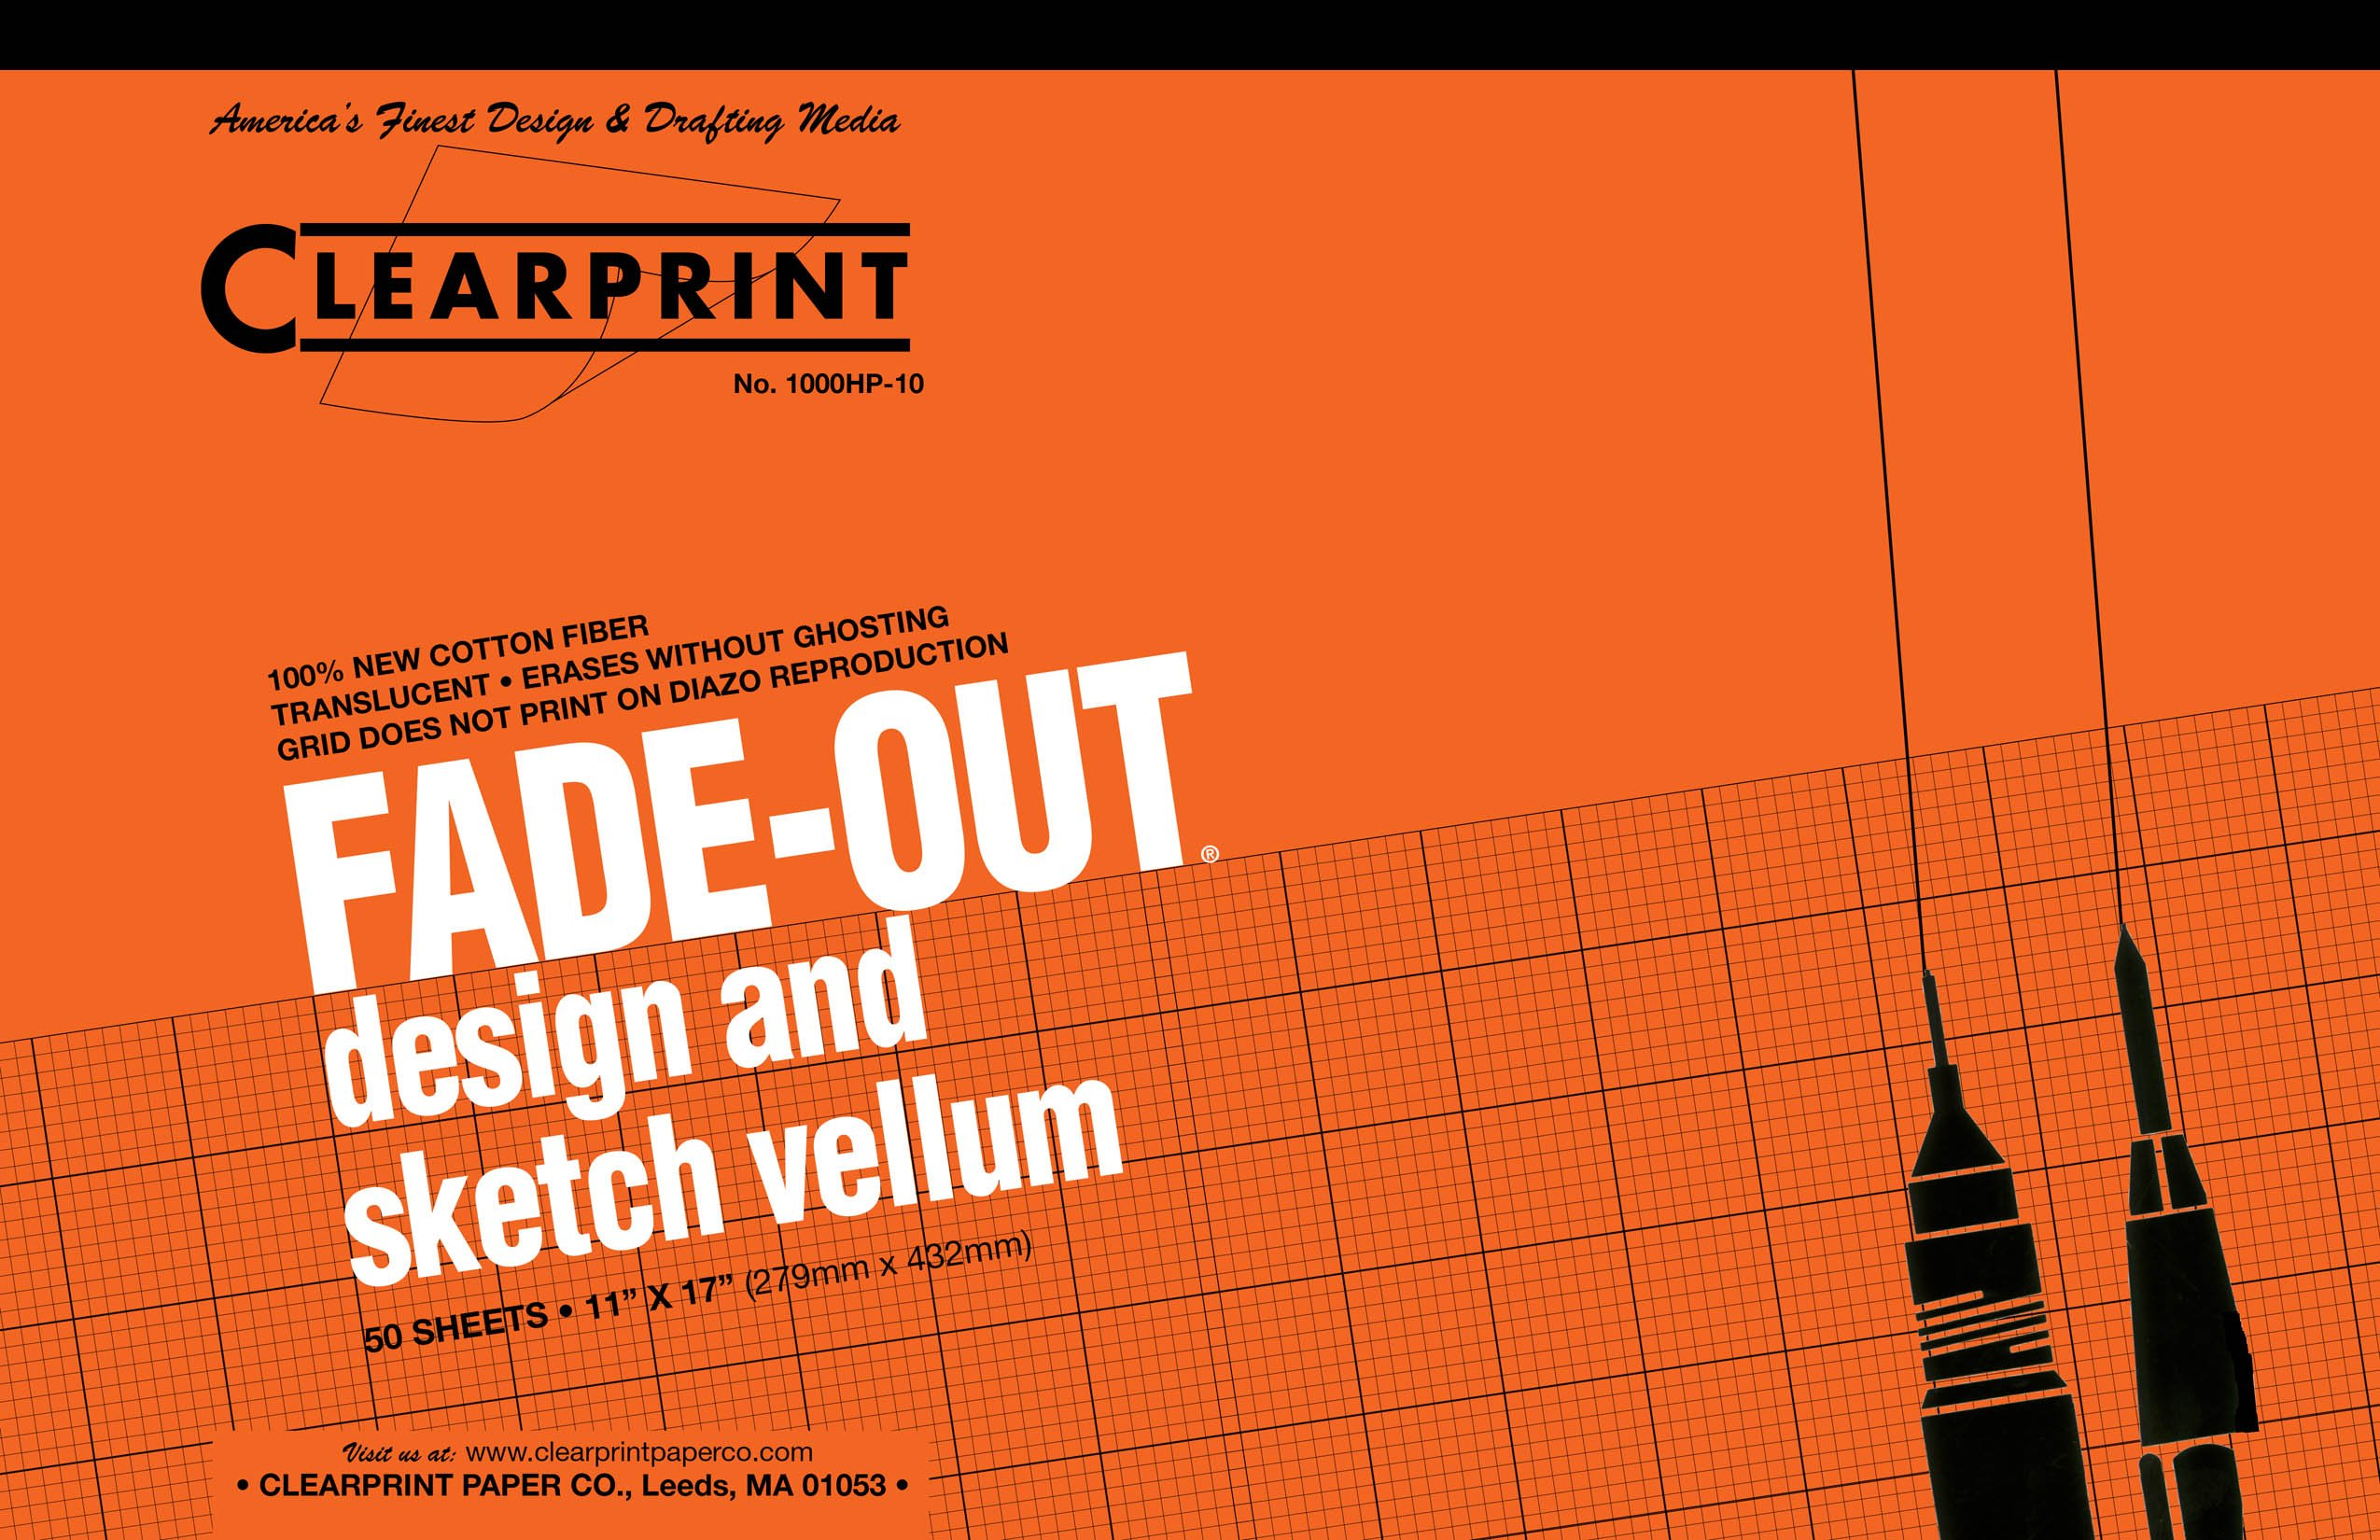 Clearprint 1000H Design Vellum Pad with Printed Fade-Out 10x10 Grid, 16 lb., 100% Cotton, 11 x 17 Inches, 50 Sheets, Translucent White (10003416)